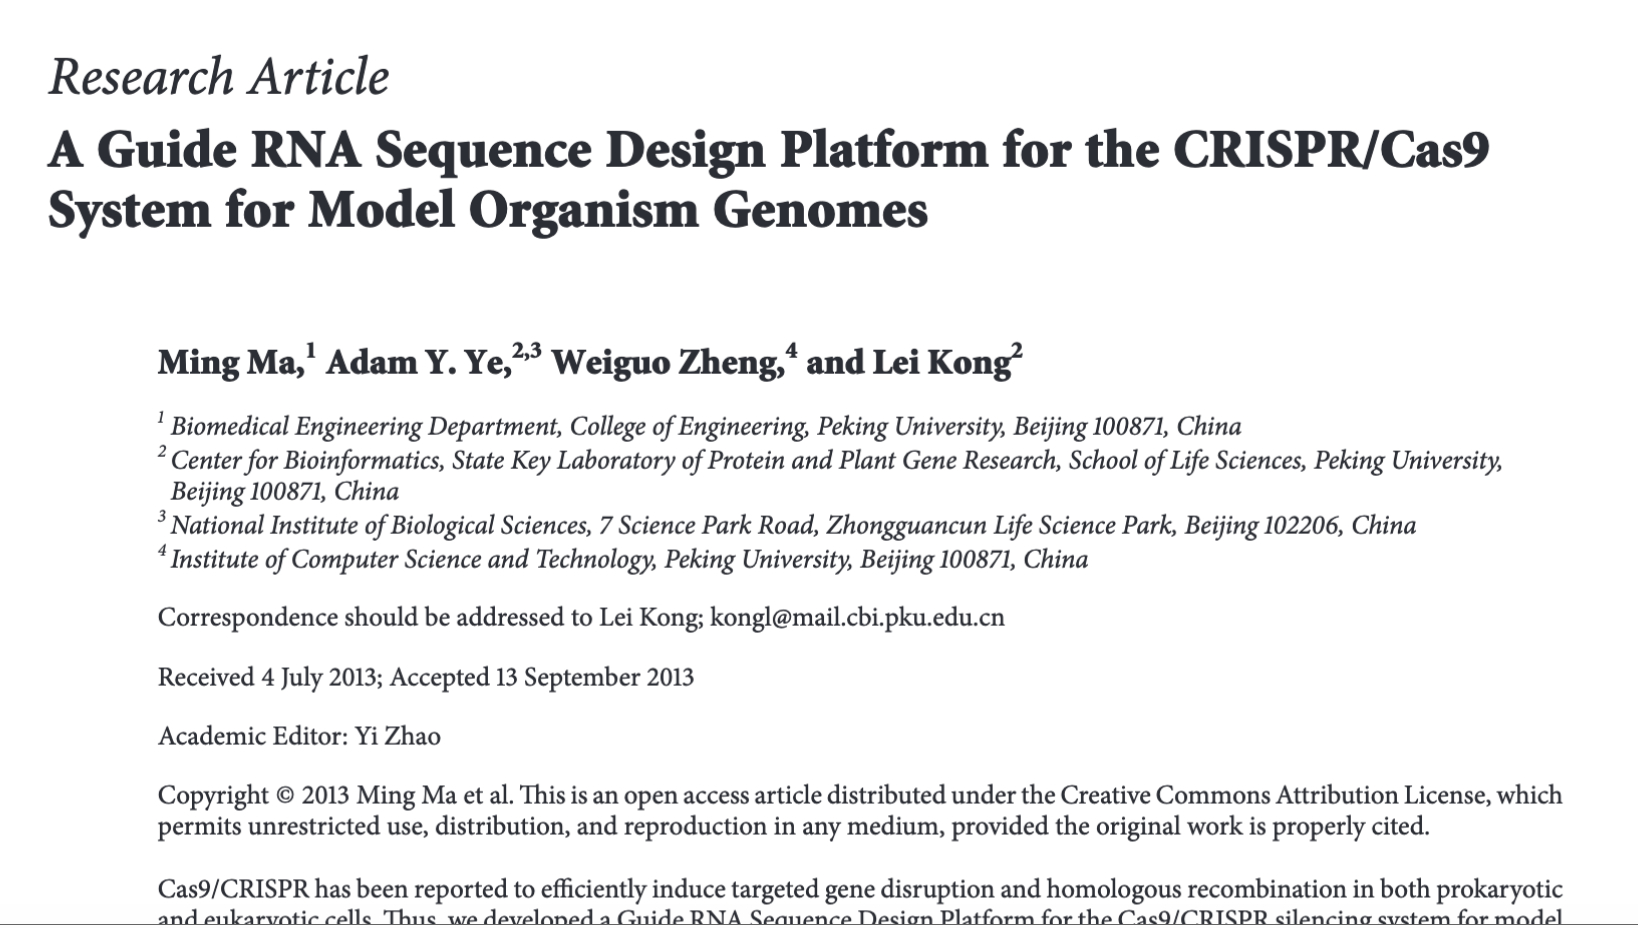 """A Guide RNA Sequence Design Platform for the CRISPR/Cas9 system for model organism genomes"""